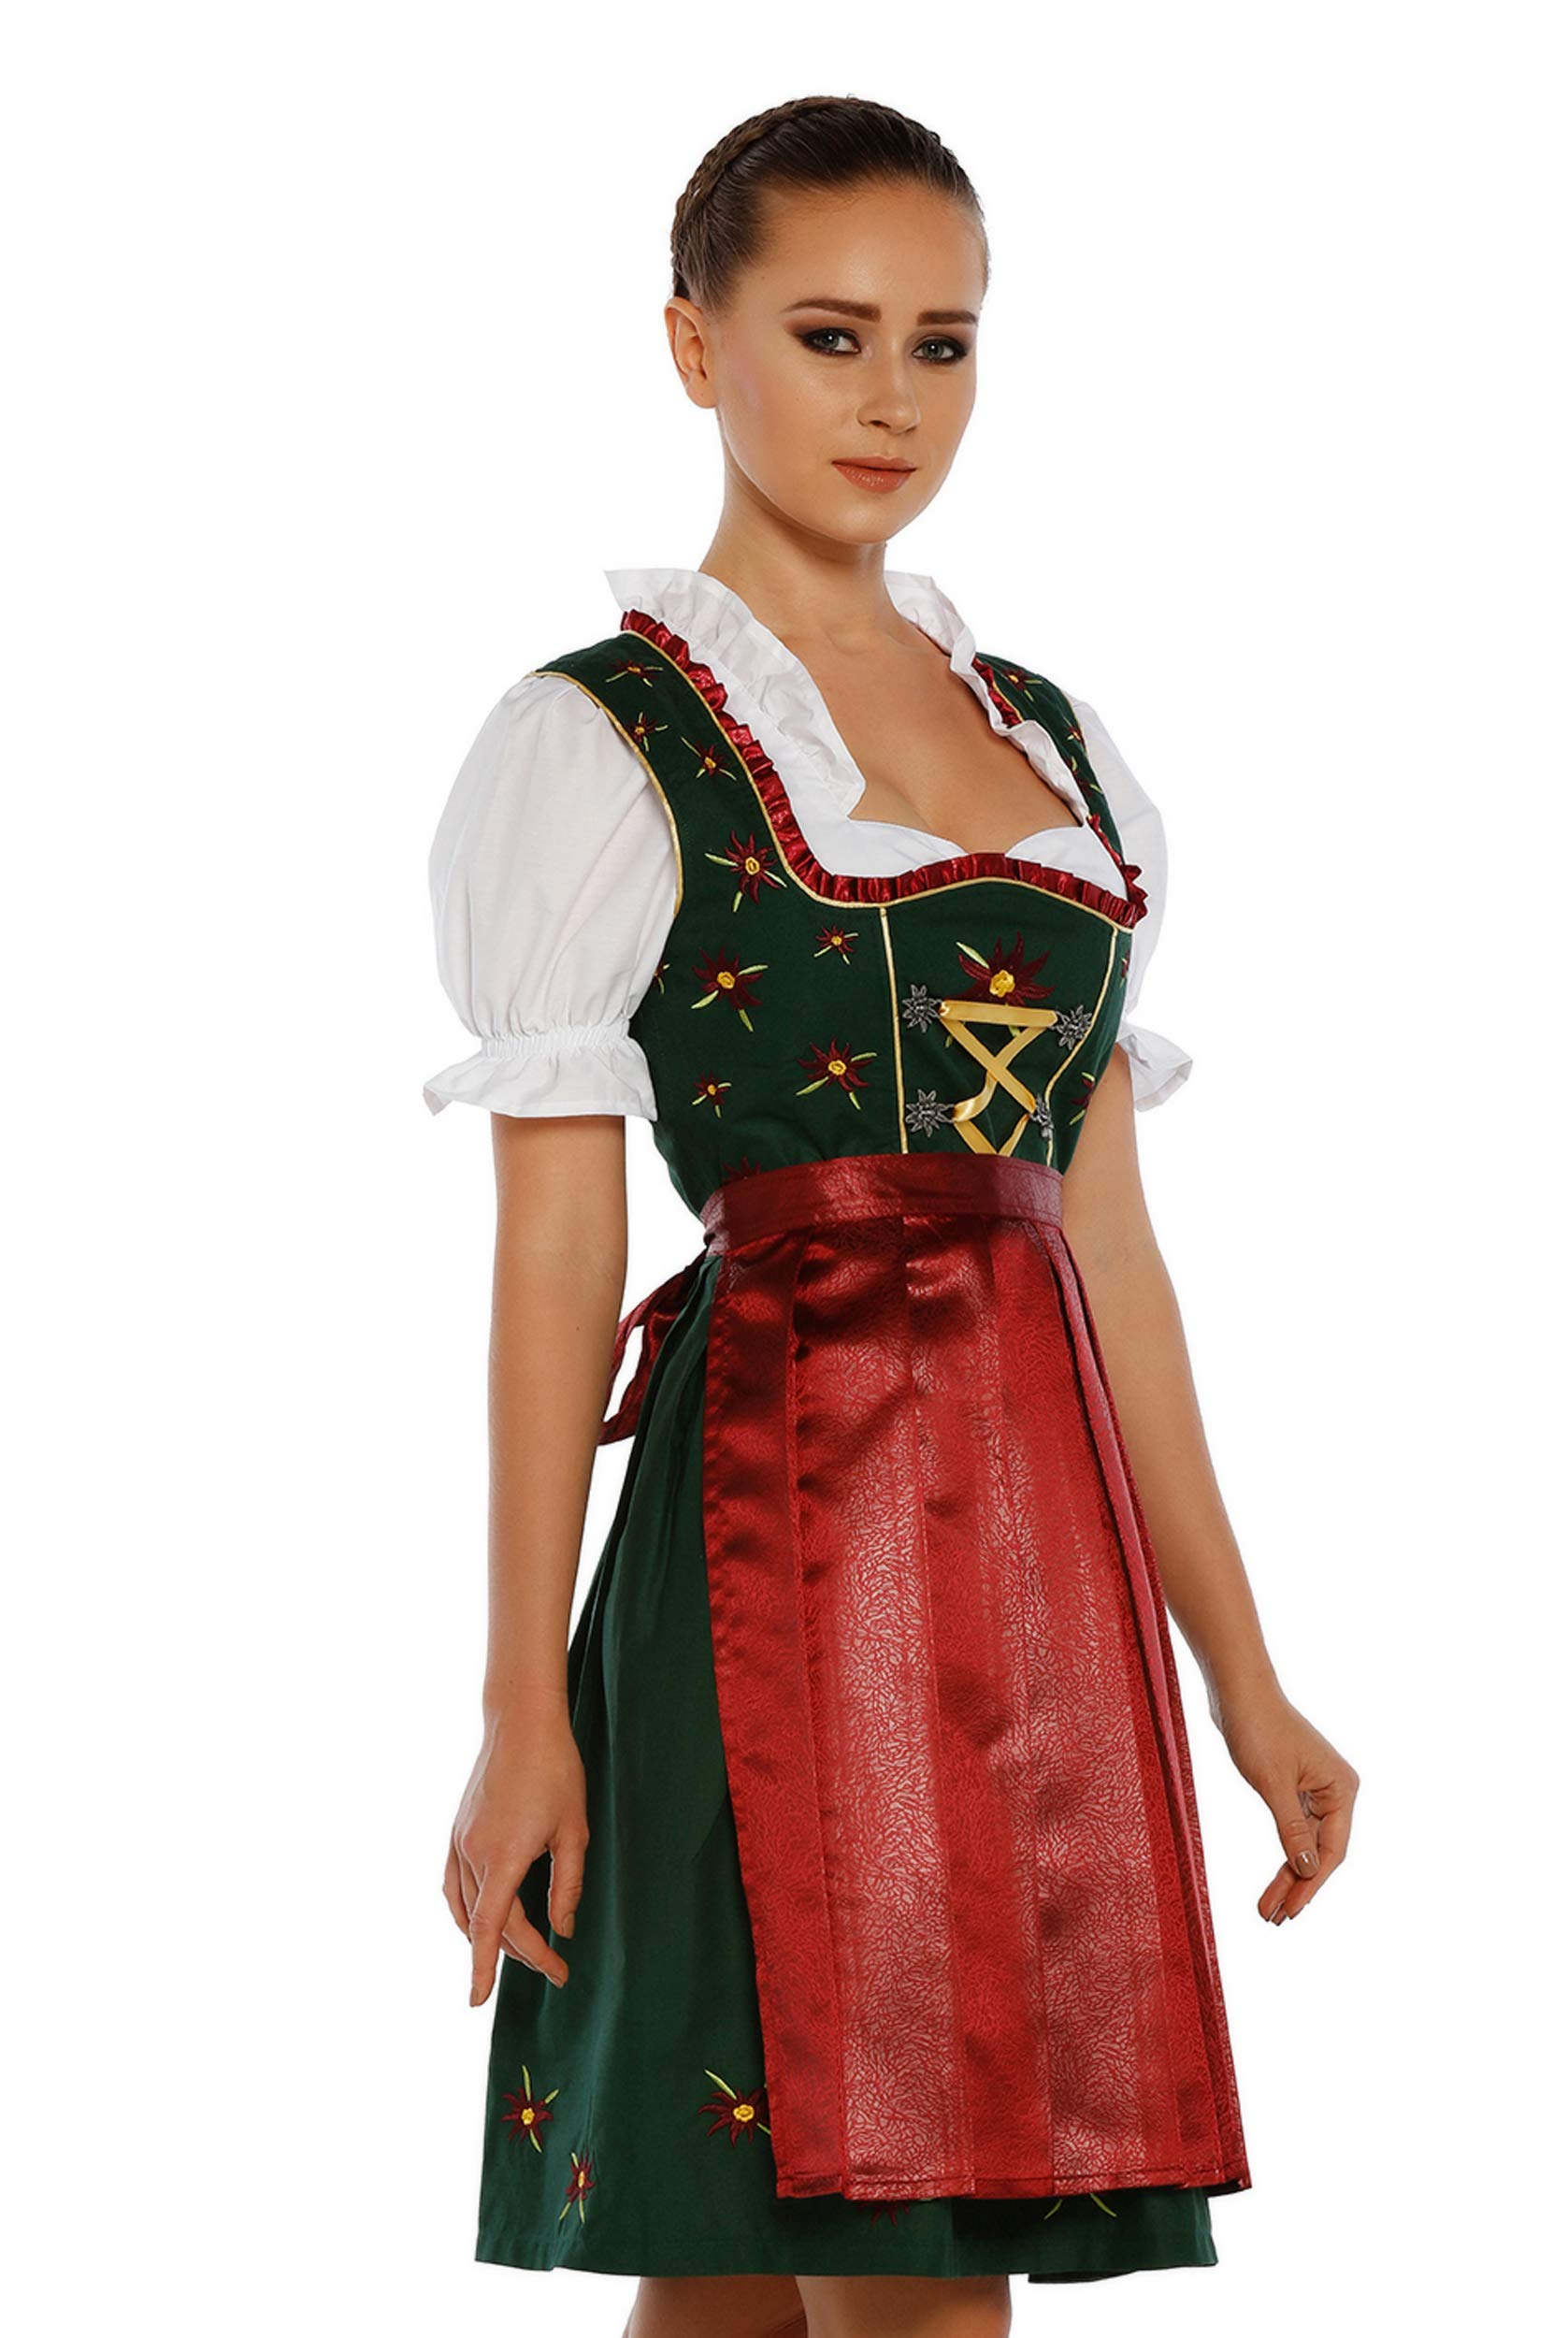 3-pieces Dirndl Dress Authentic Bavarian Floral